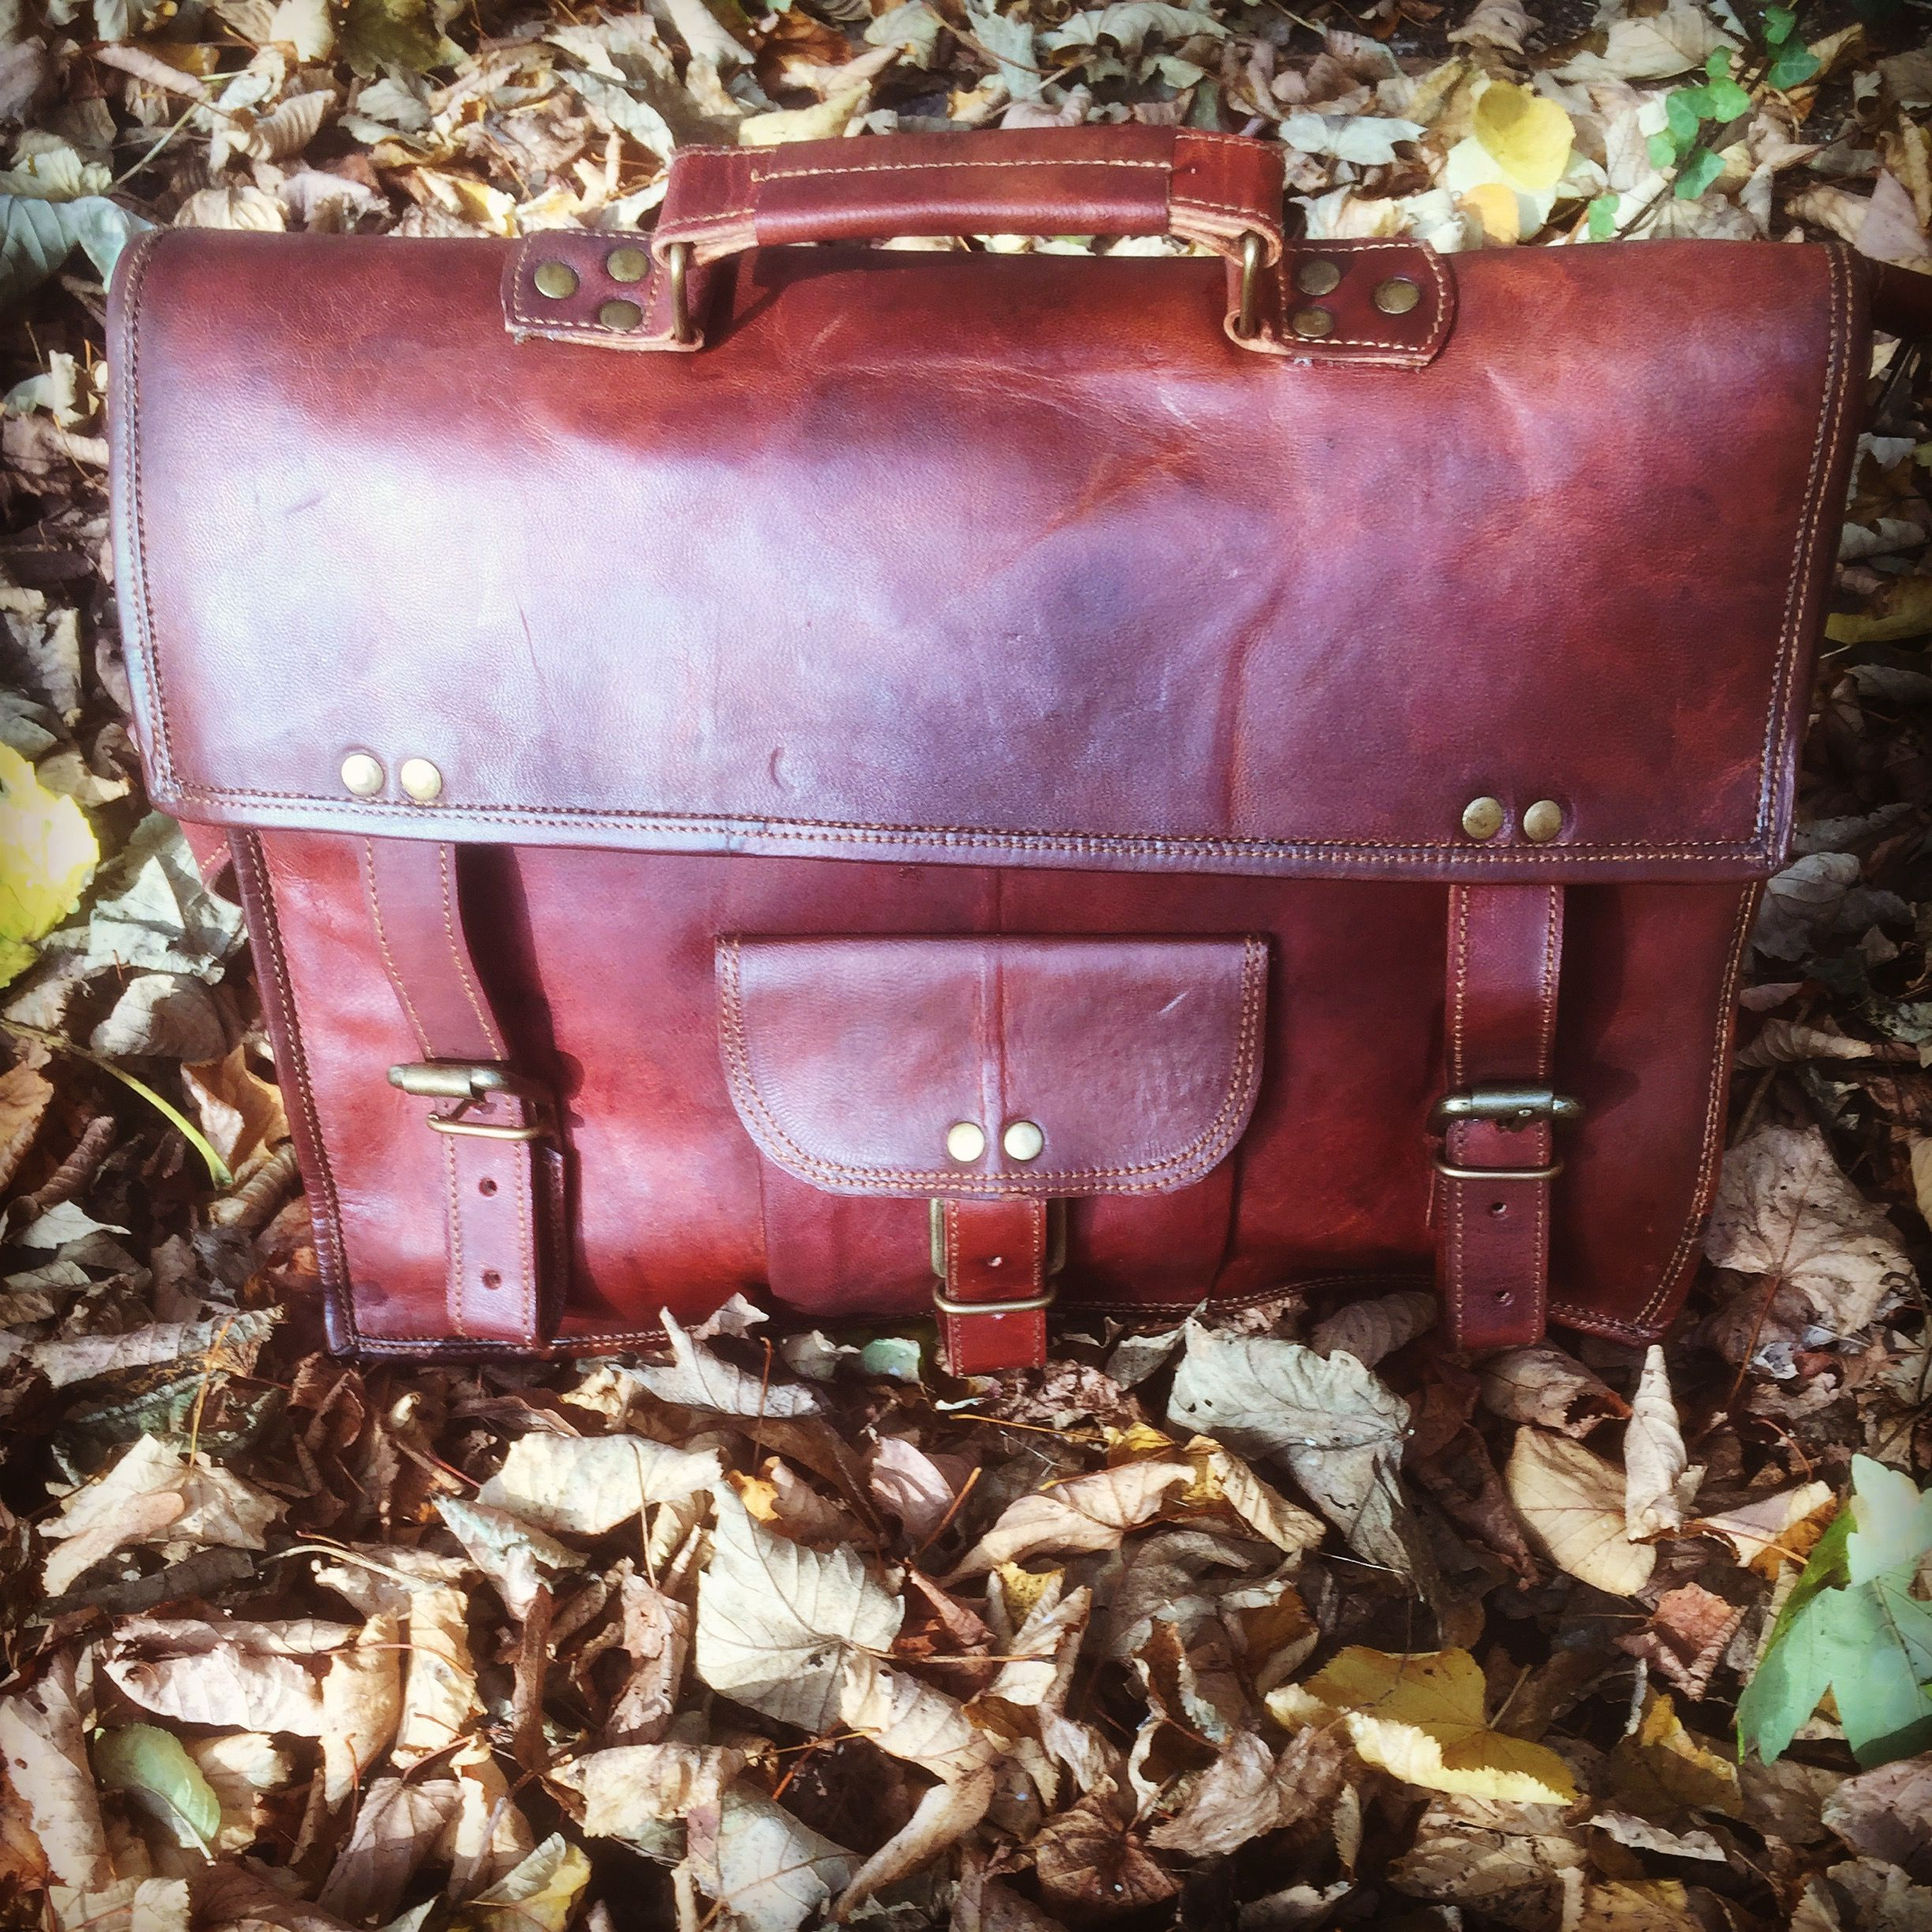 Autumn has officially landed. This vintage look brown leather satchel is now available at £74 from our start up Bristol shop FRONTIER #ethicalfashion #fairtrade #autumnfashion